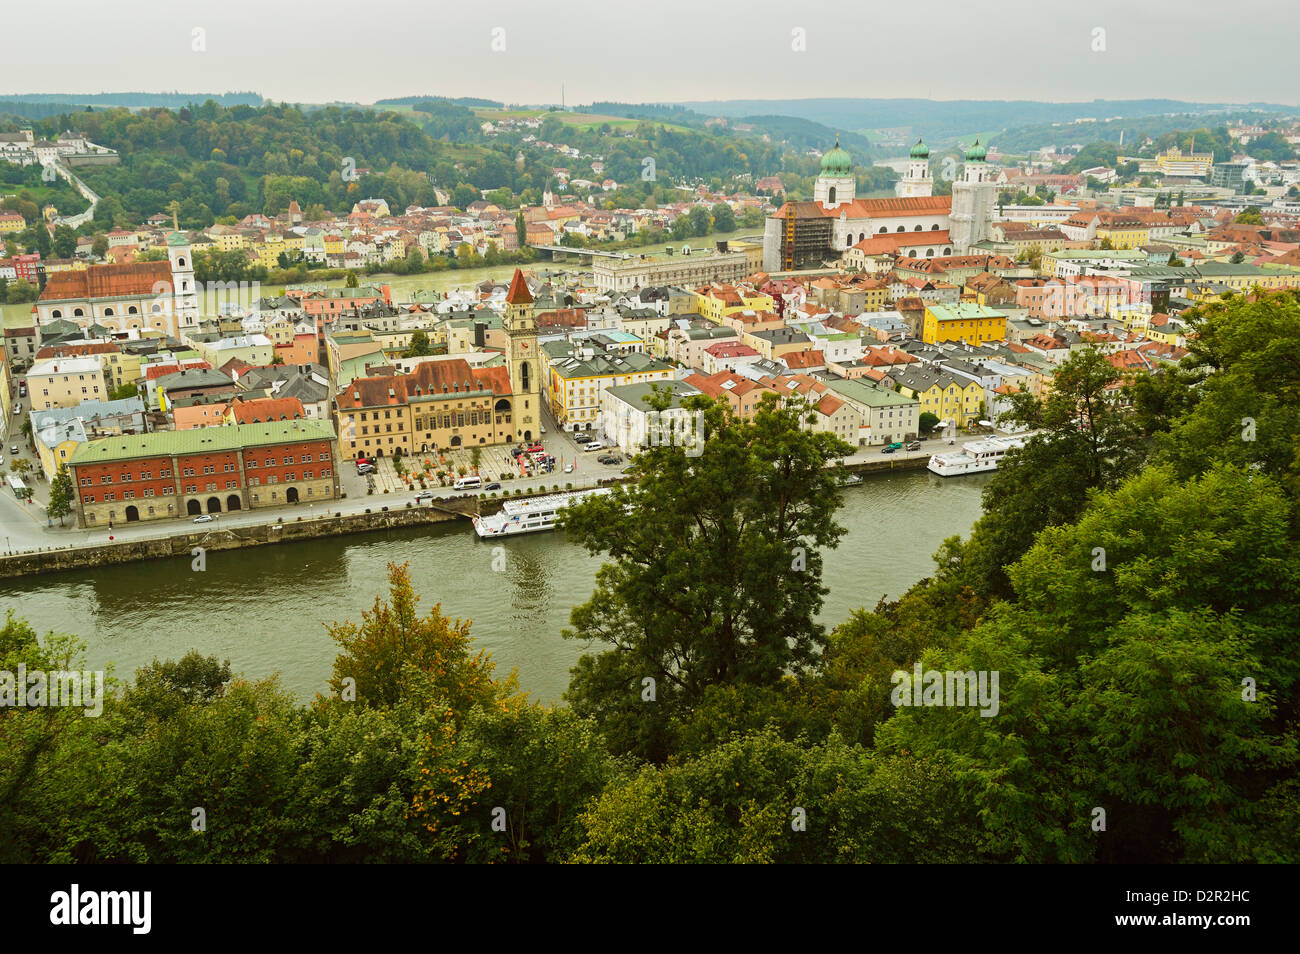 View of Passau with rivers Danube and Inn, Bavaria, Germany, Europe Stock Photo